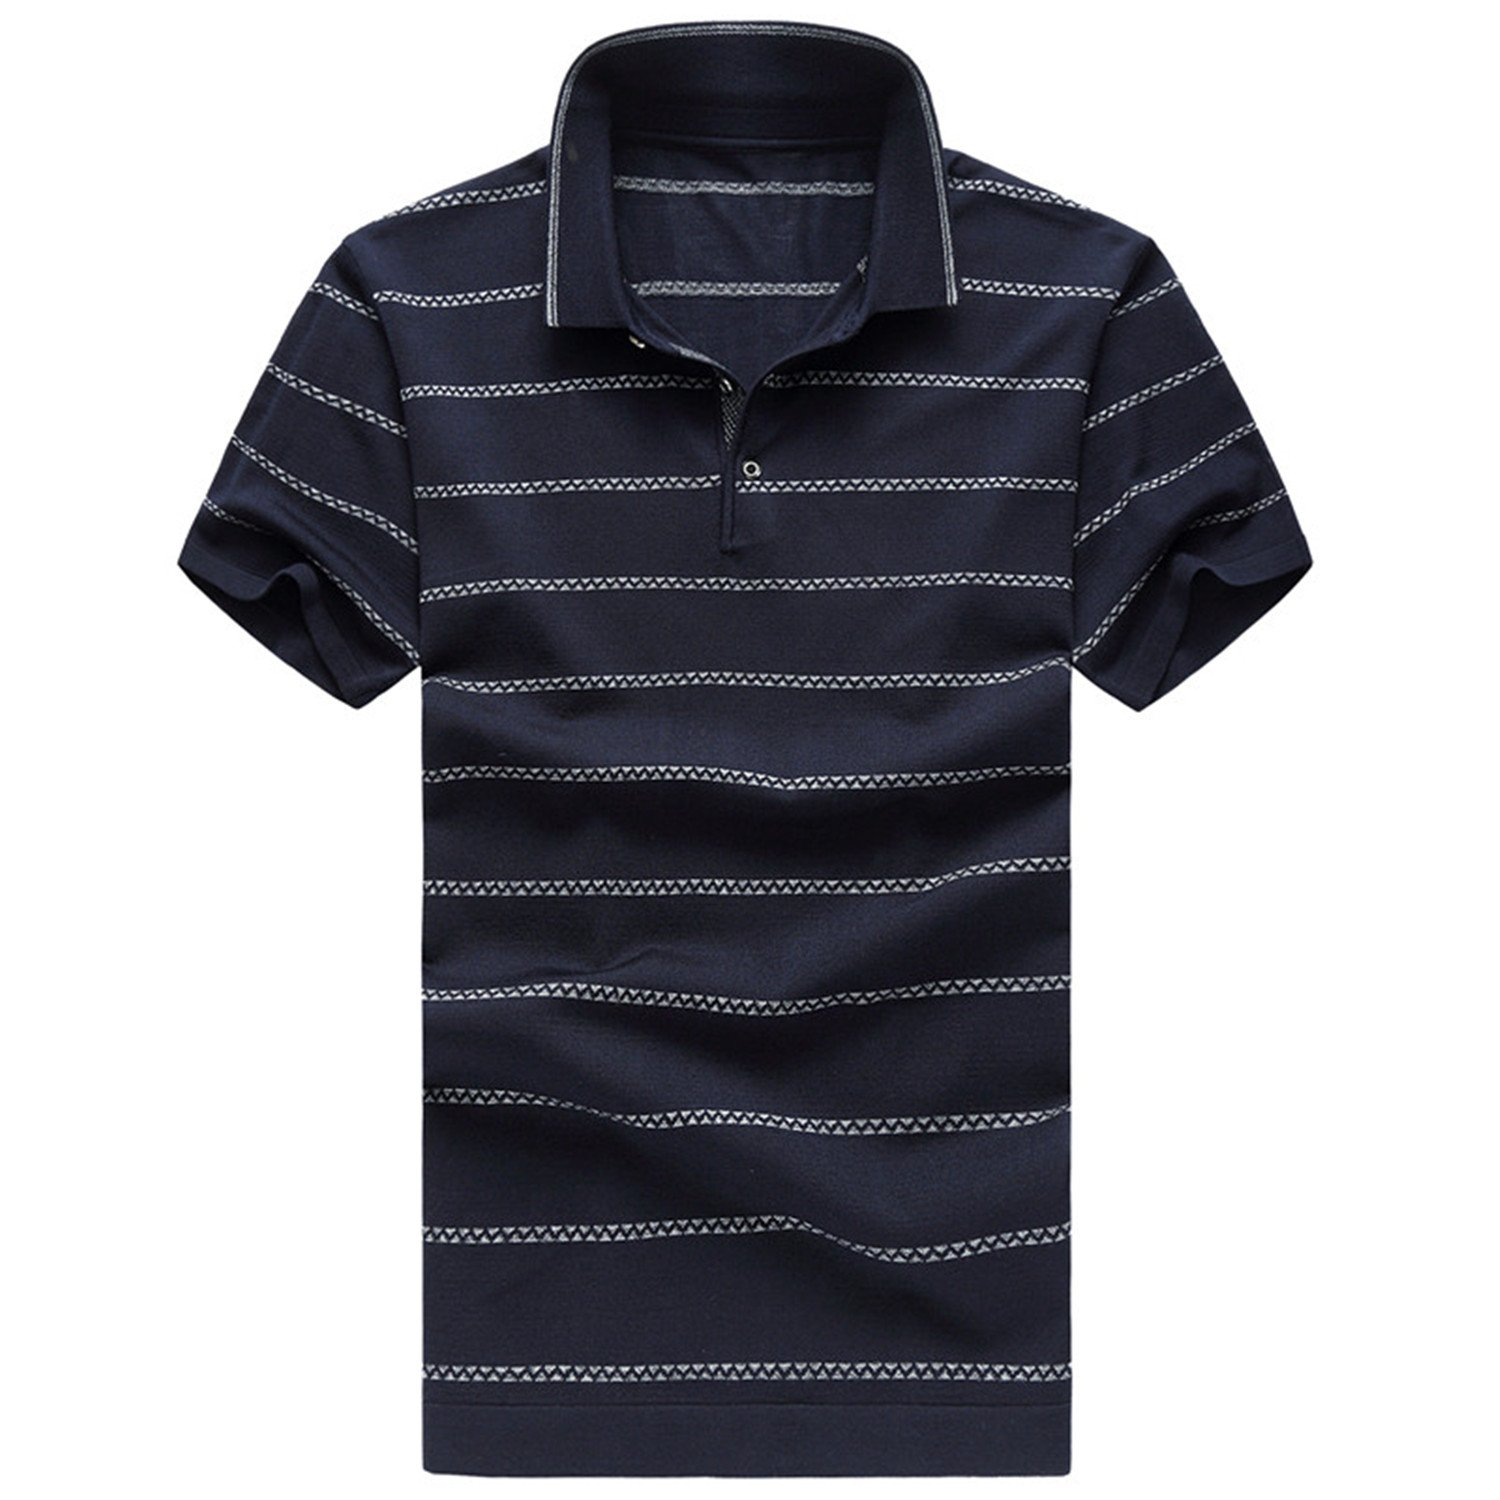 Willie Marlow Polo Shirt With Short Sleeves Fashion Stripe Polo Mens Plus Size 6XL Navy Blue 6XL